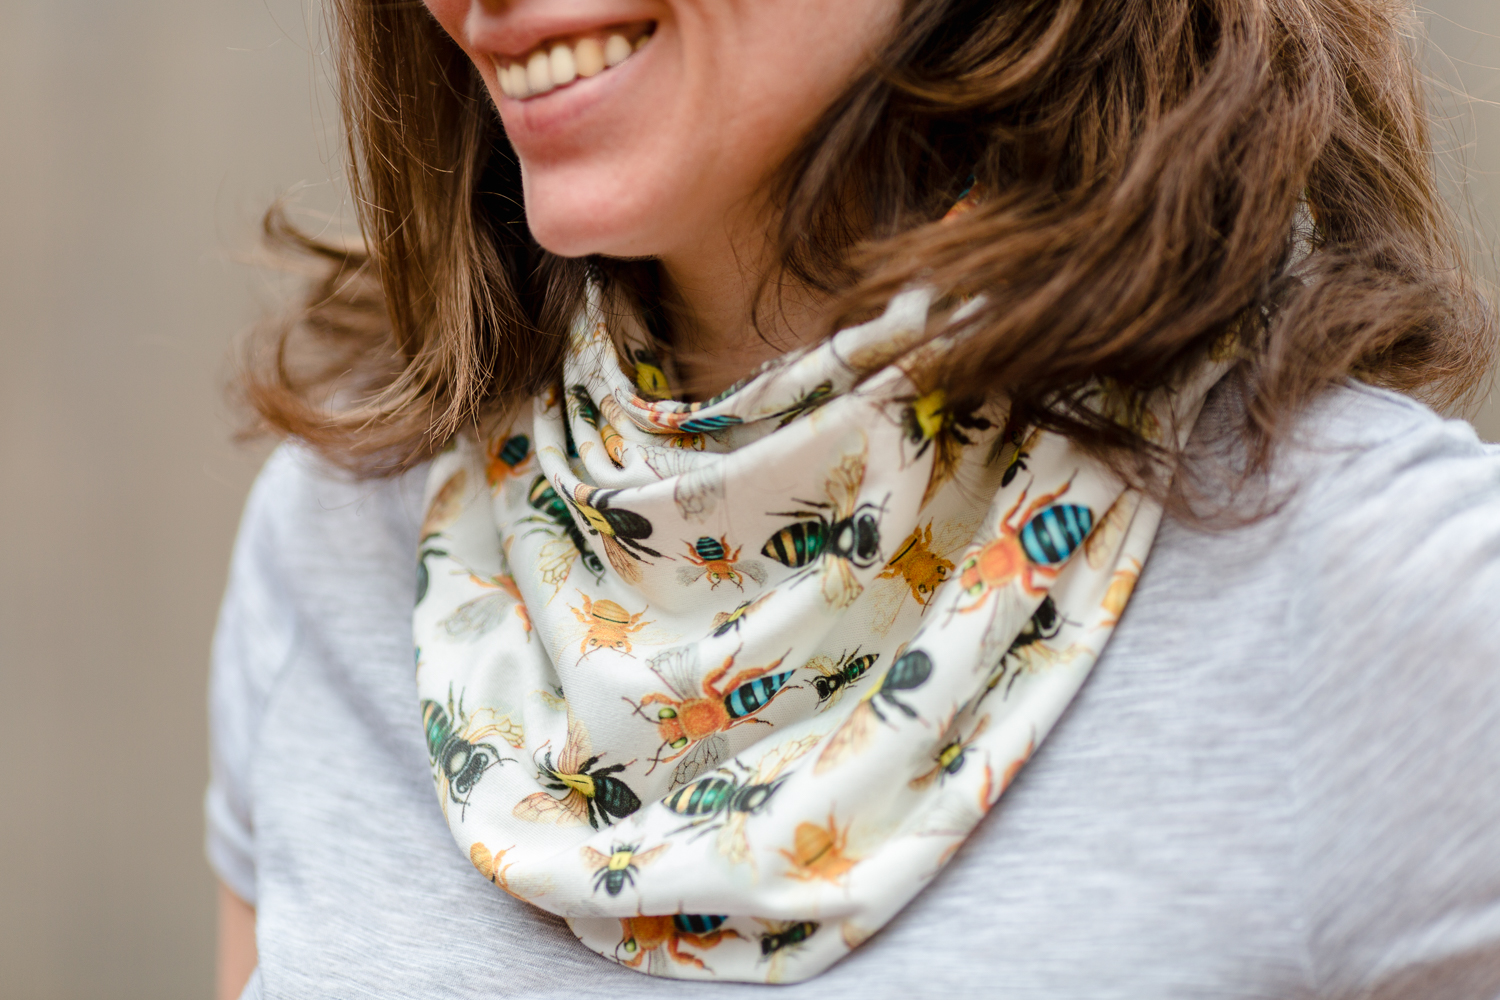 Australian native bees scarf